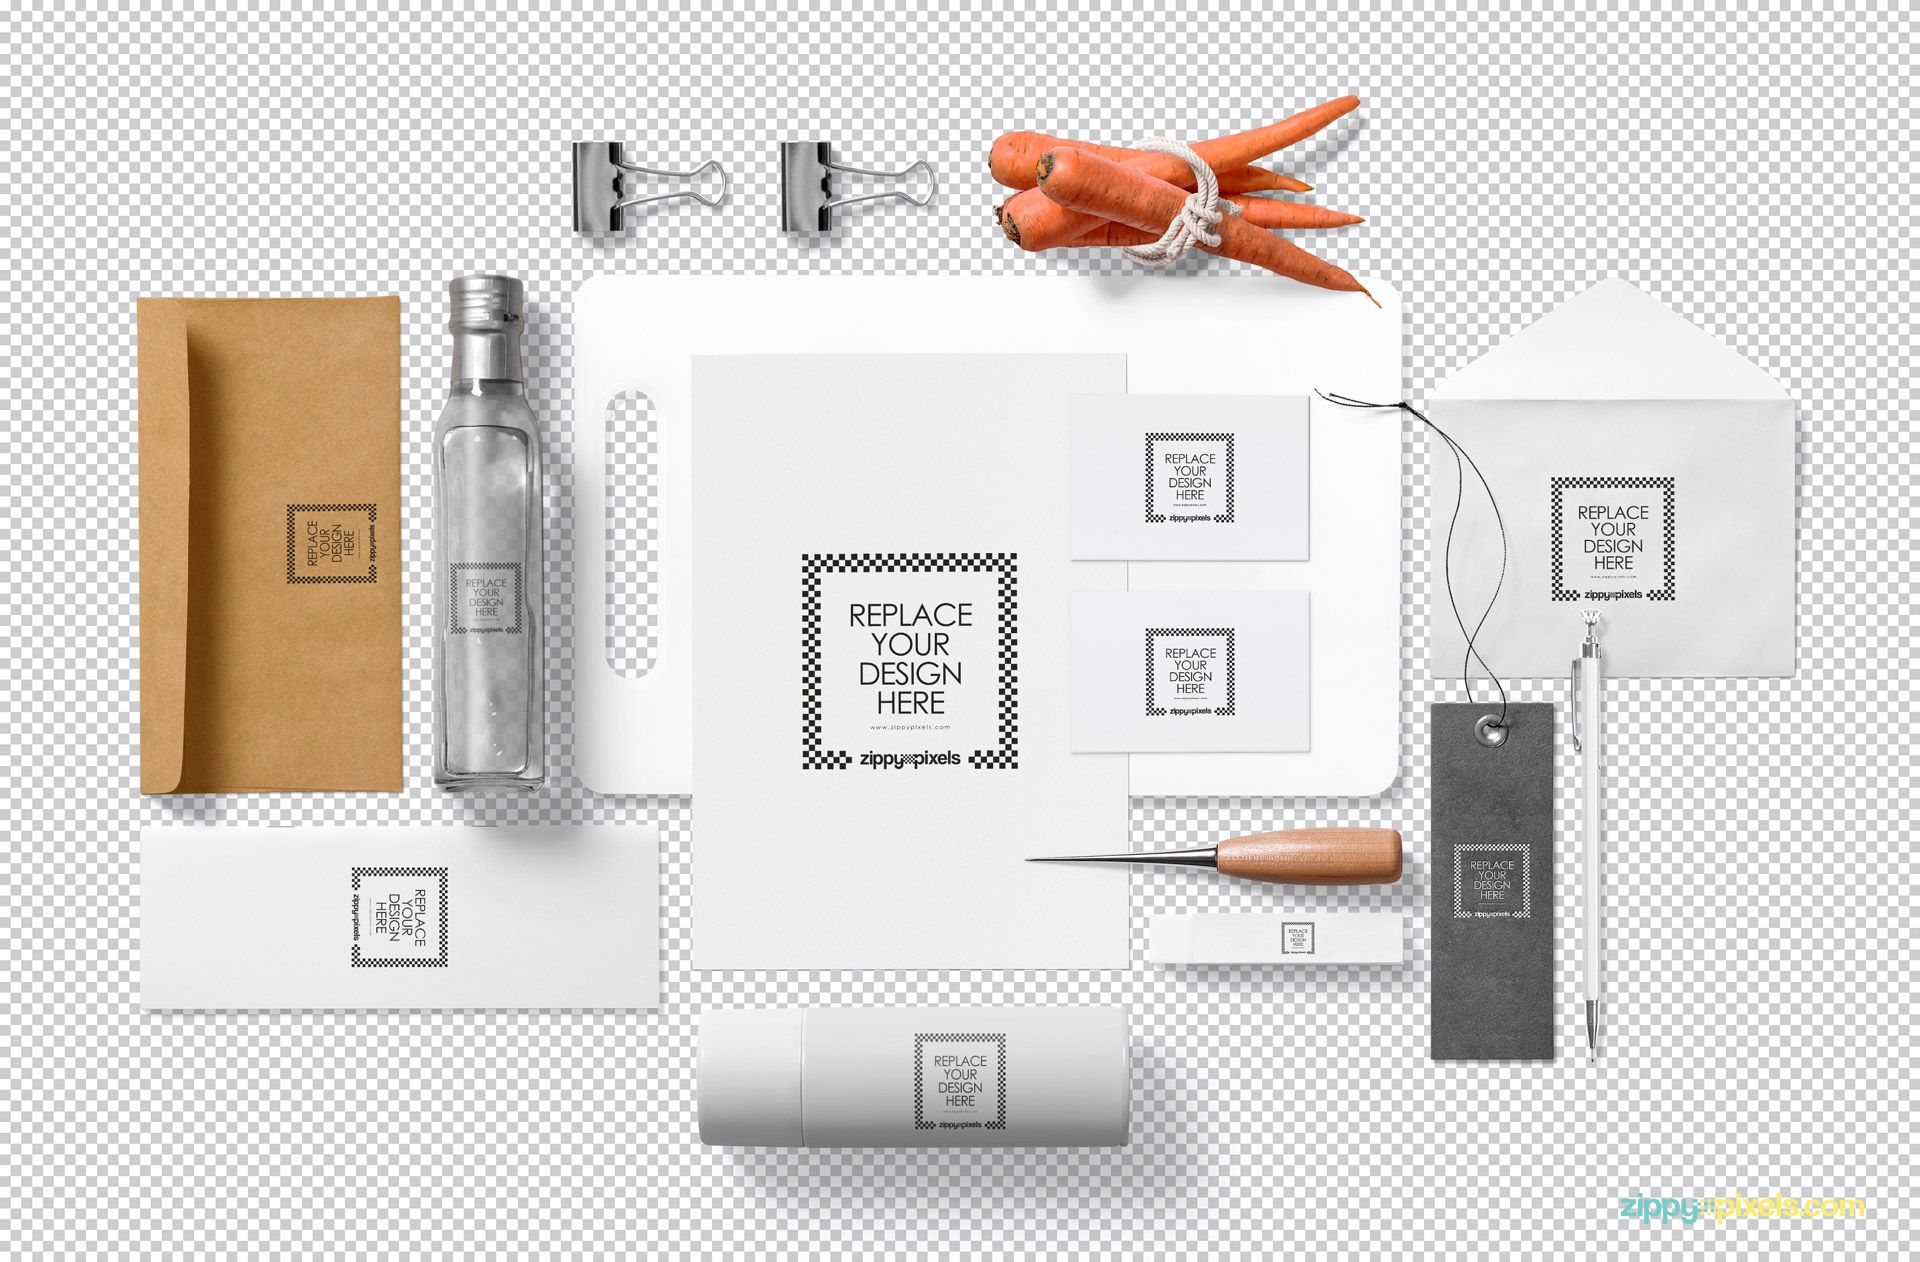 Editable branding mockup PSD showing replaceable design option.